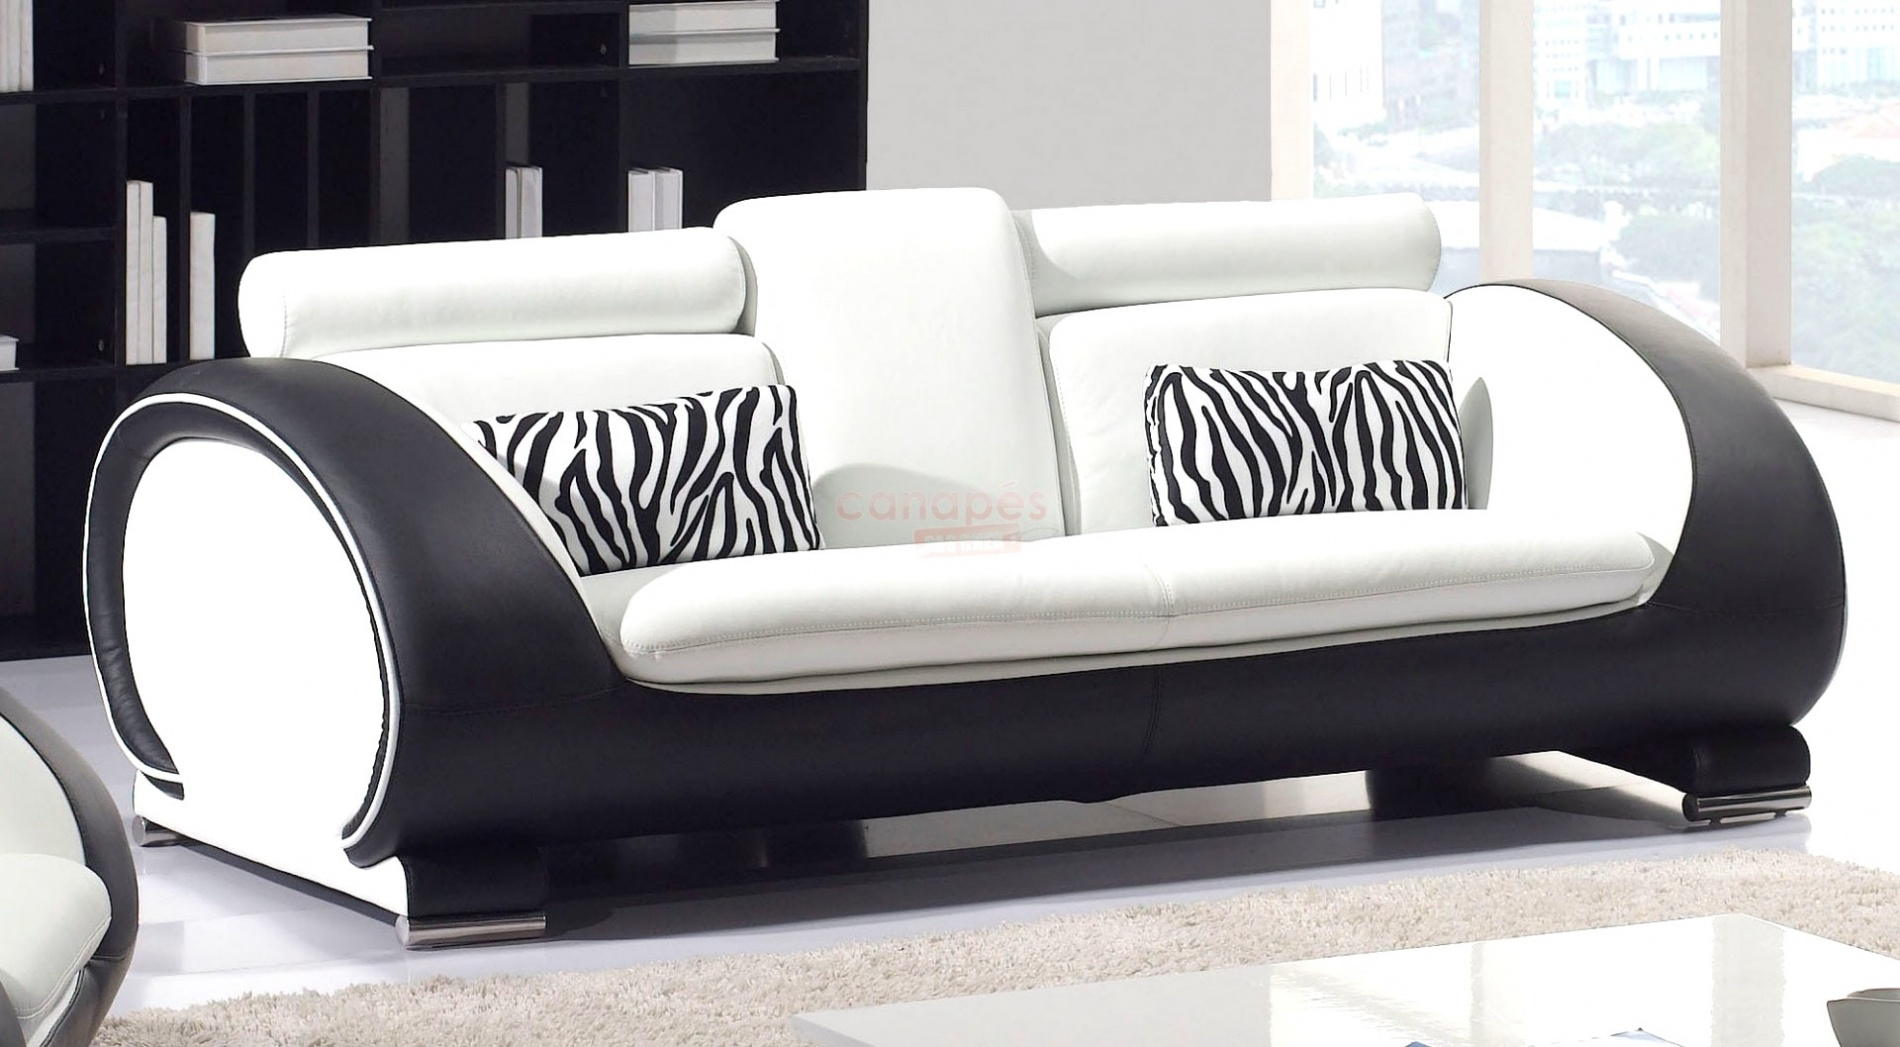 canap convertible d occasion meilleur de galerie les 13. Black Bedroom Furniture Sets. Home Design Ideas